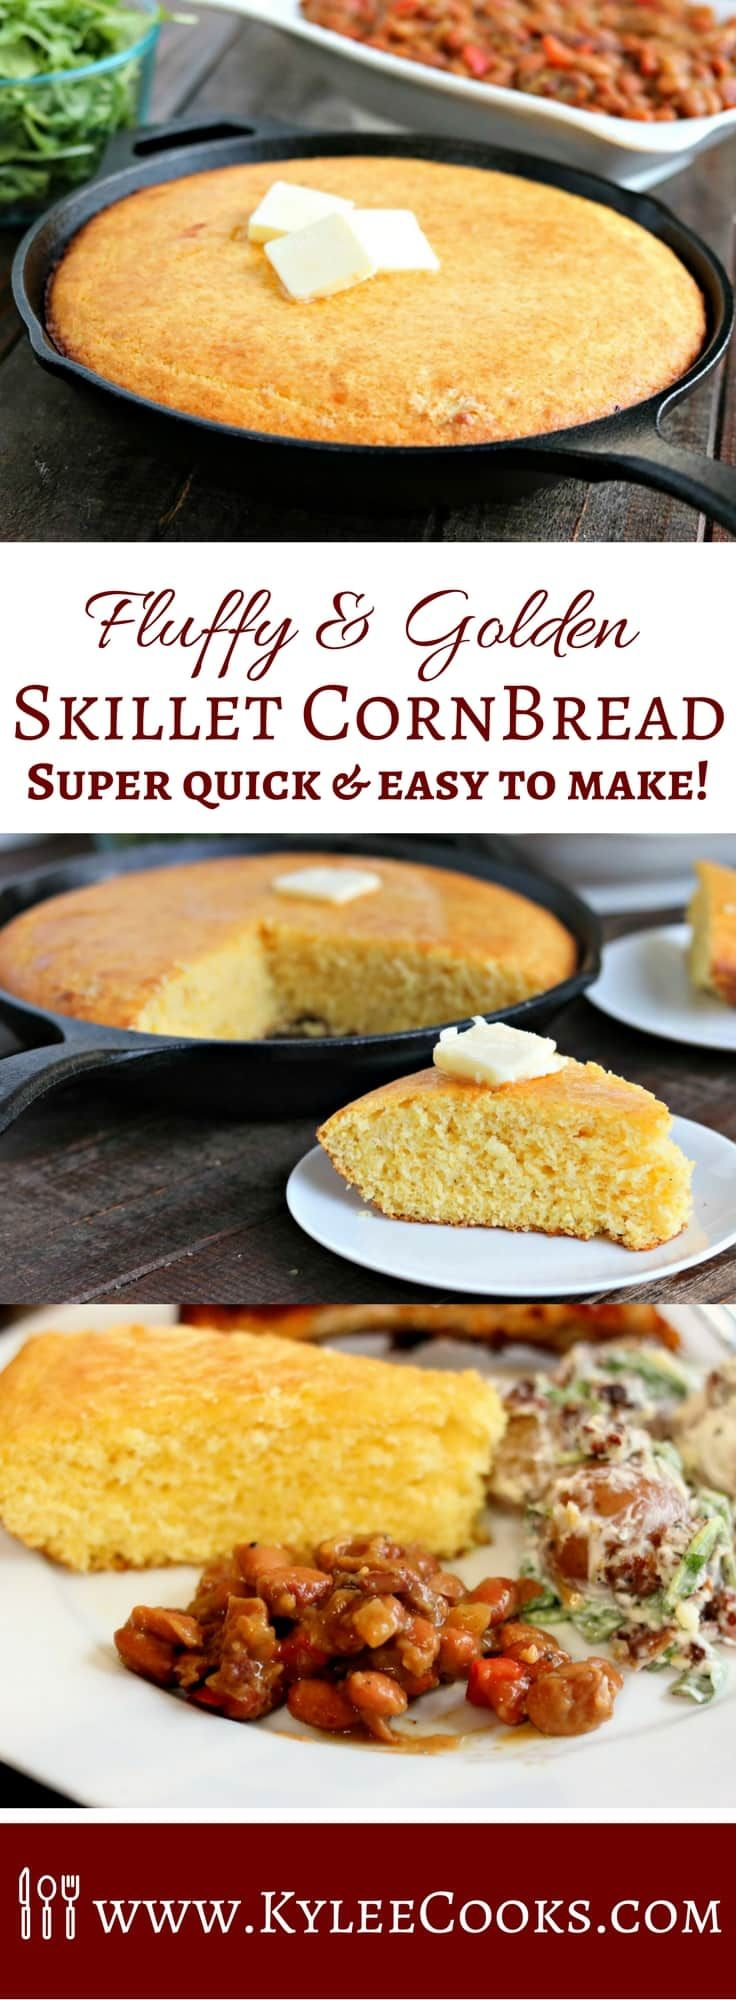 Fluffy and Golden, this Skillet Cornbread is a cinch to make, and is fantastic side for any meal! via @kyleecooks